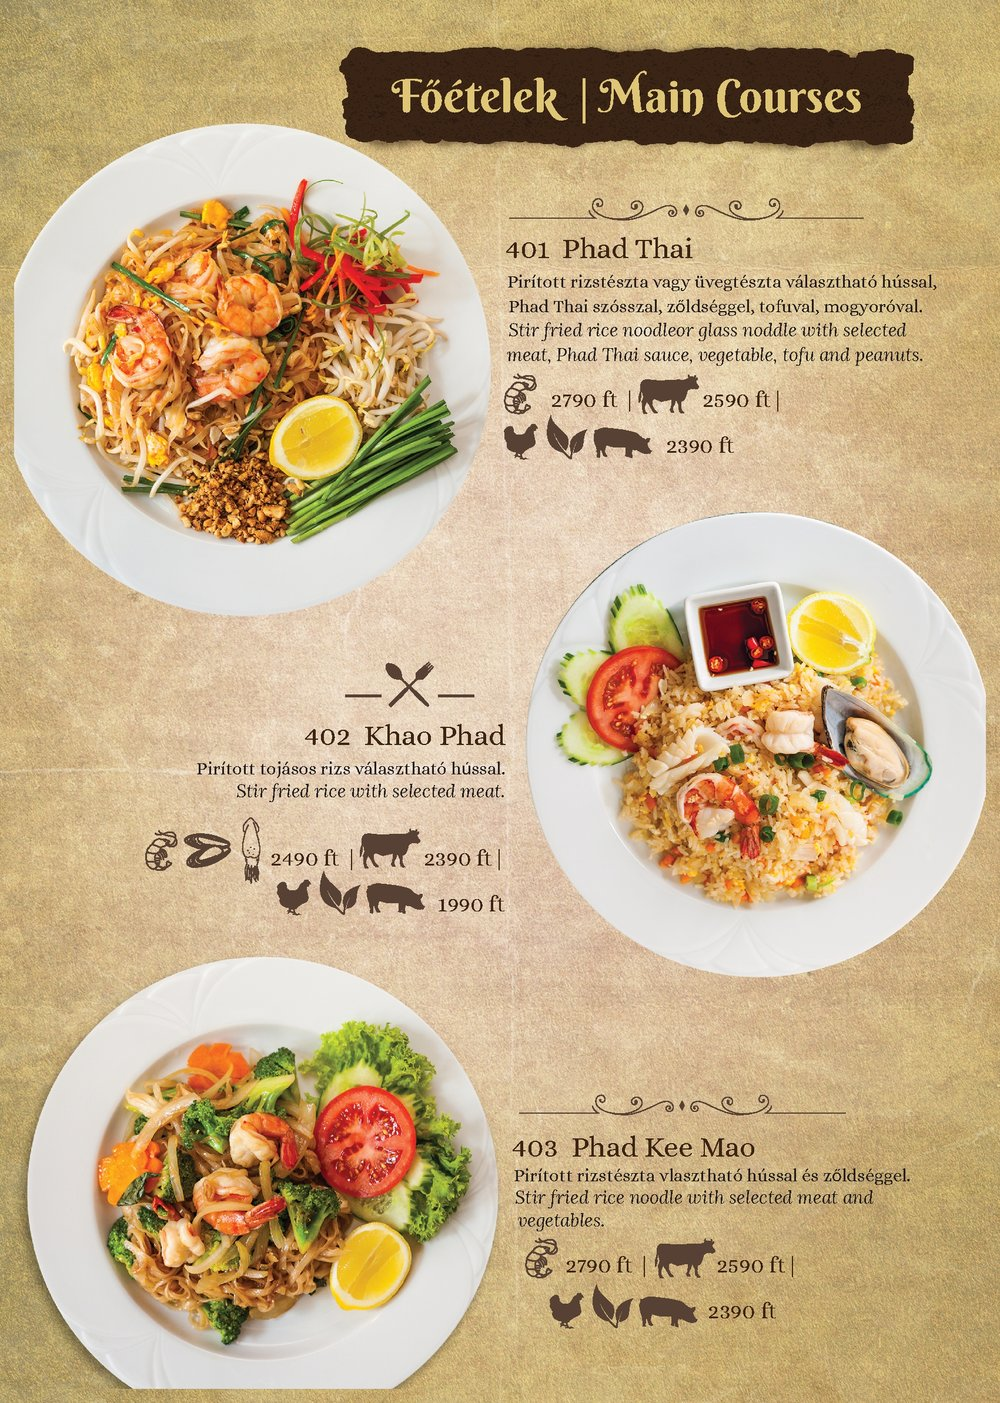 4.Sawasdee_menu_book-main_dish.2018.1.jpg